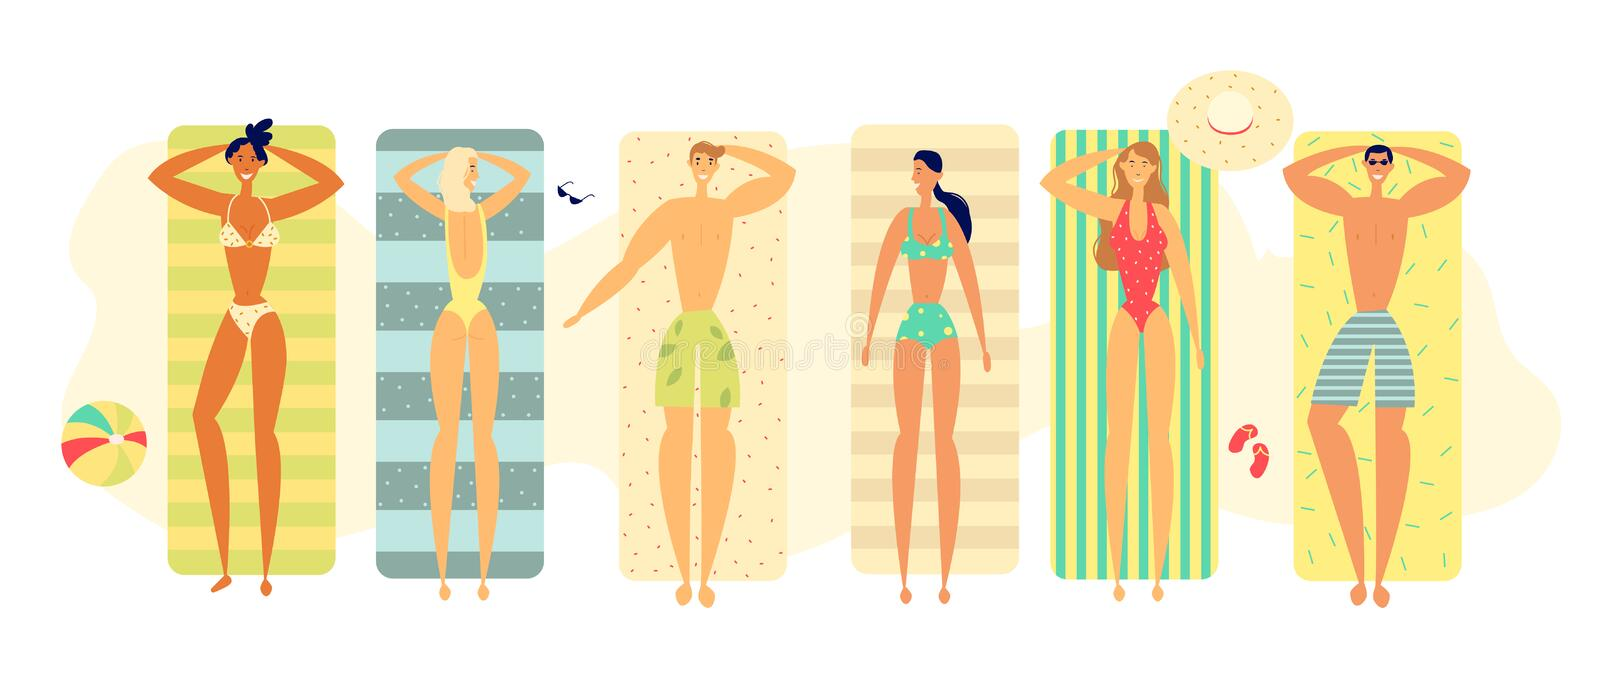 Summer Happy Relax Lifestyle Concept with People Characters Sunbathing on the Beach Carpets ilustracji